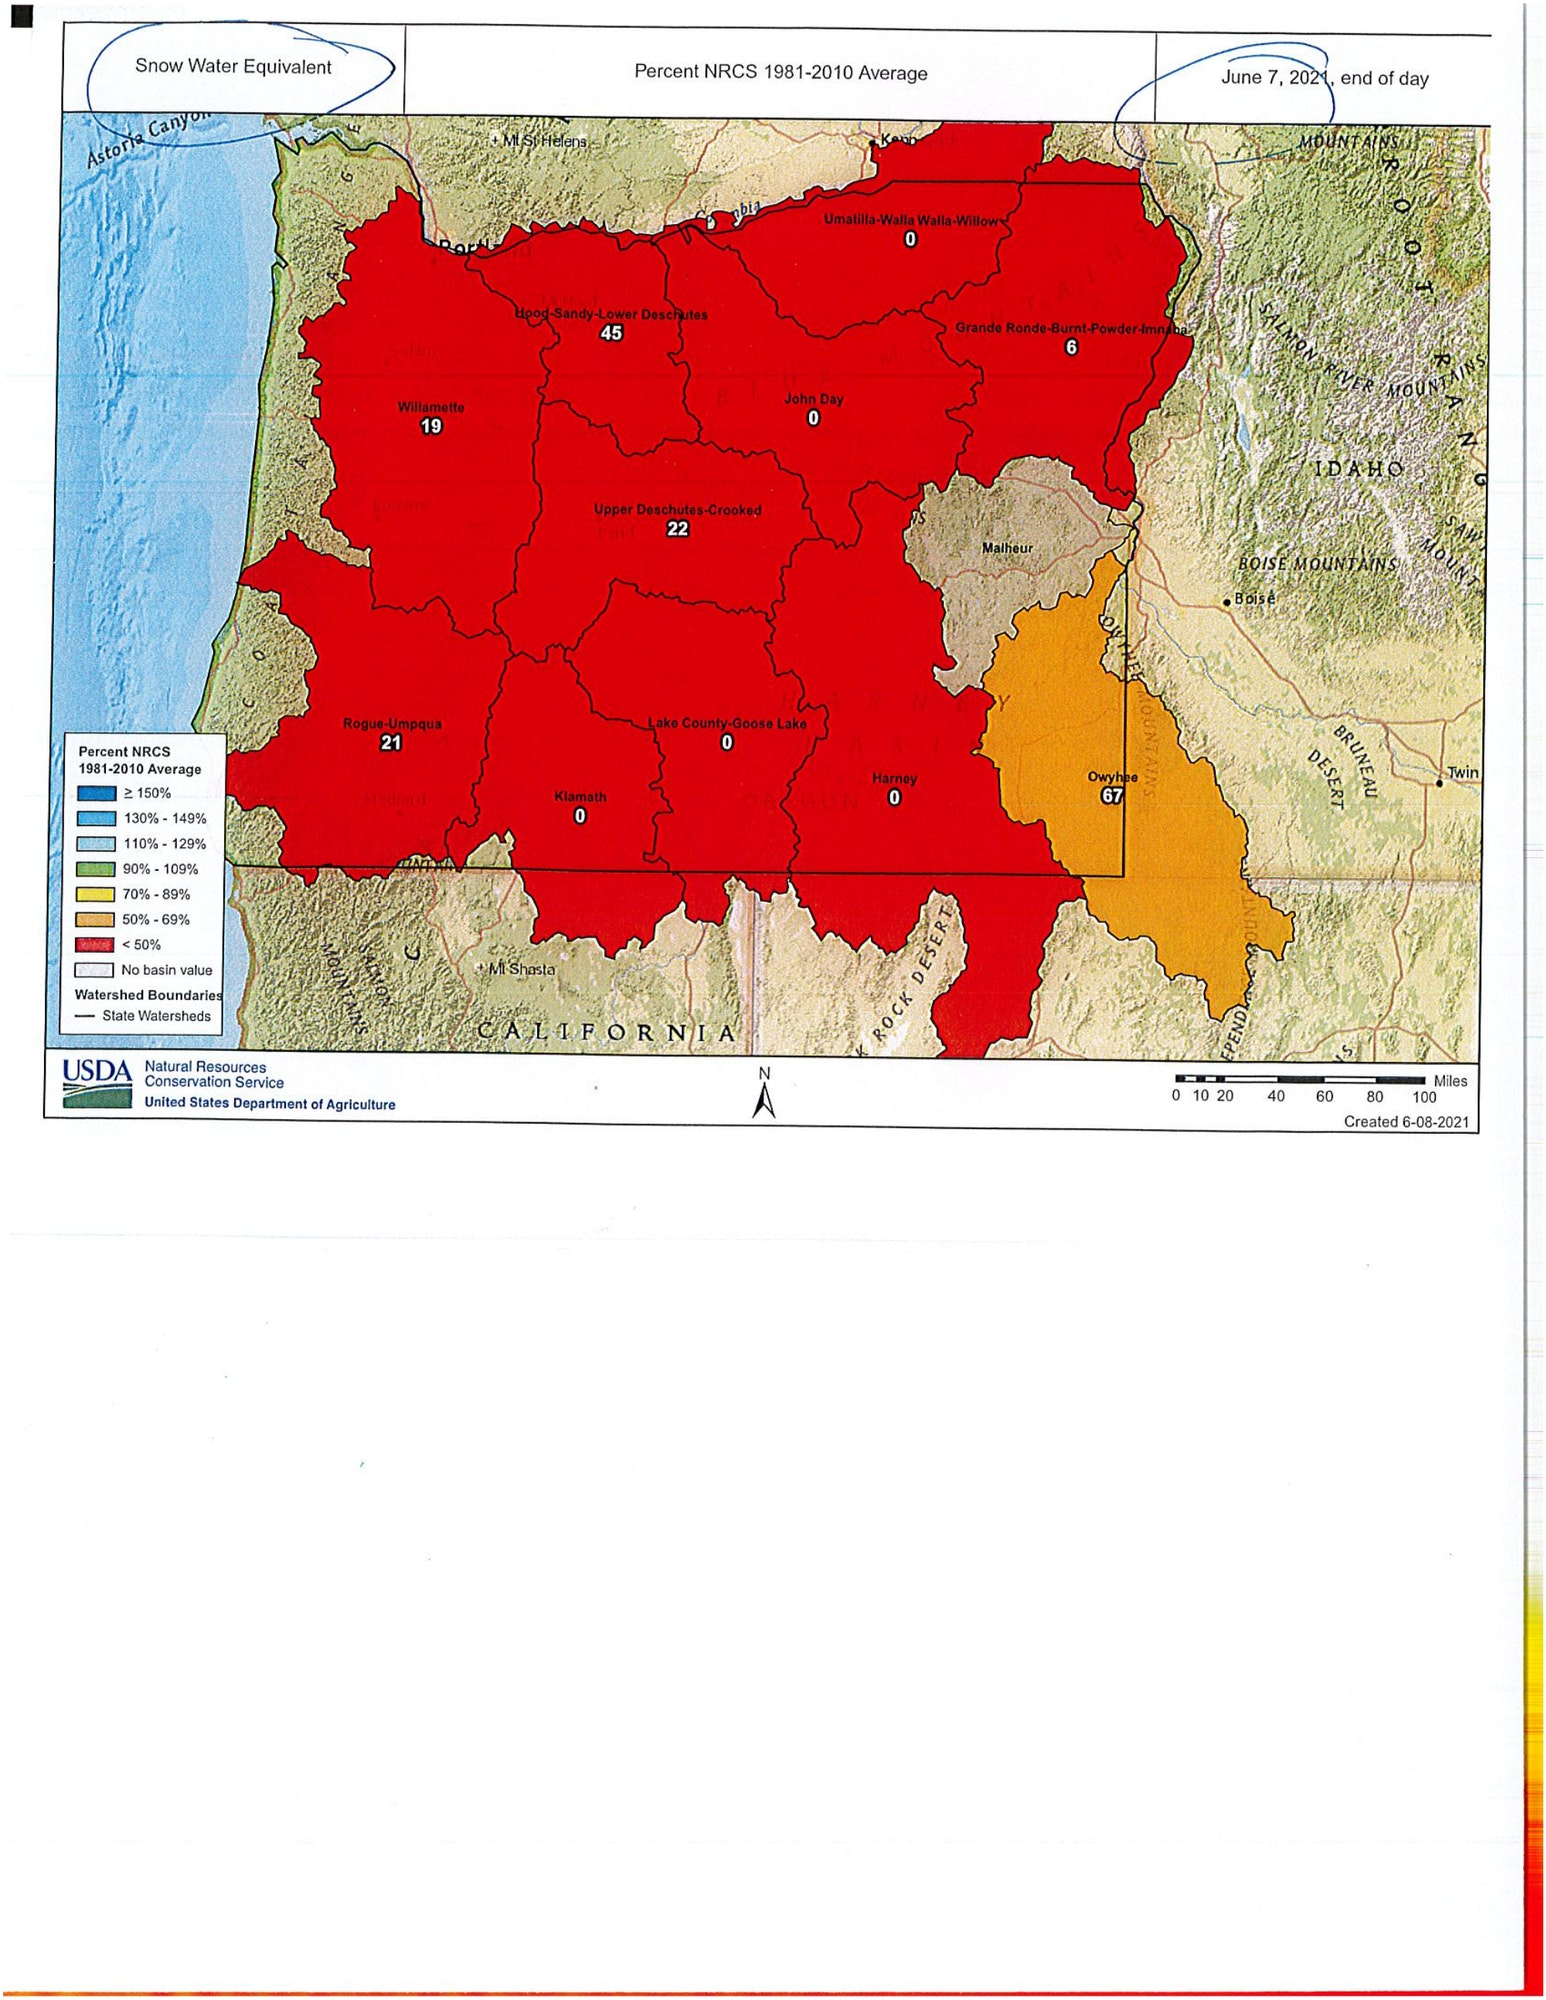 May contain map, color red